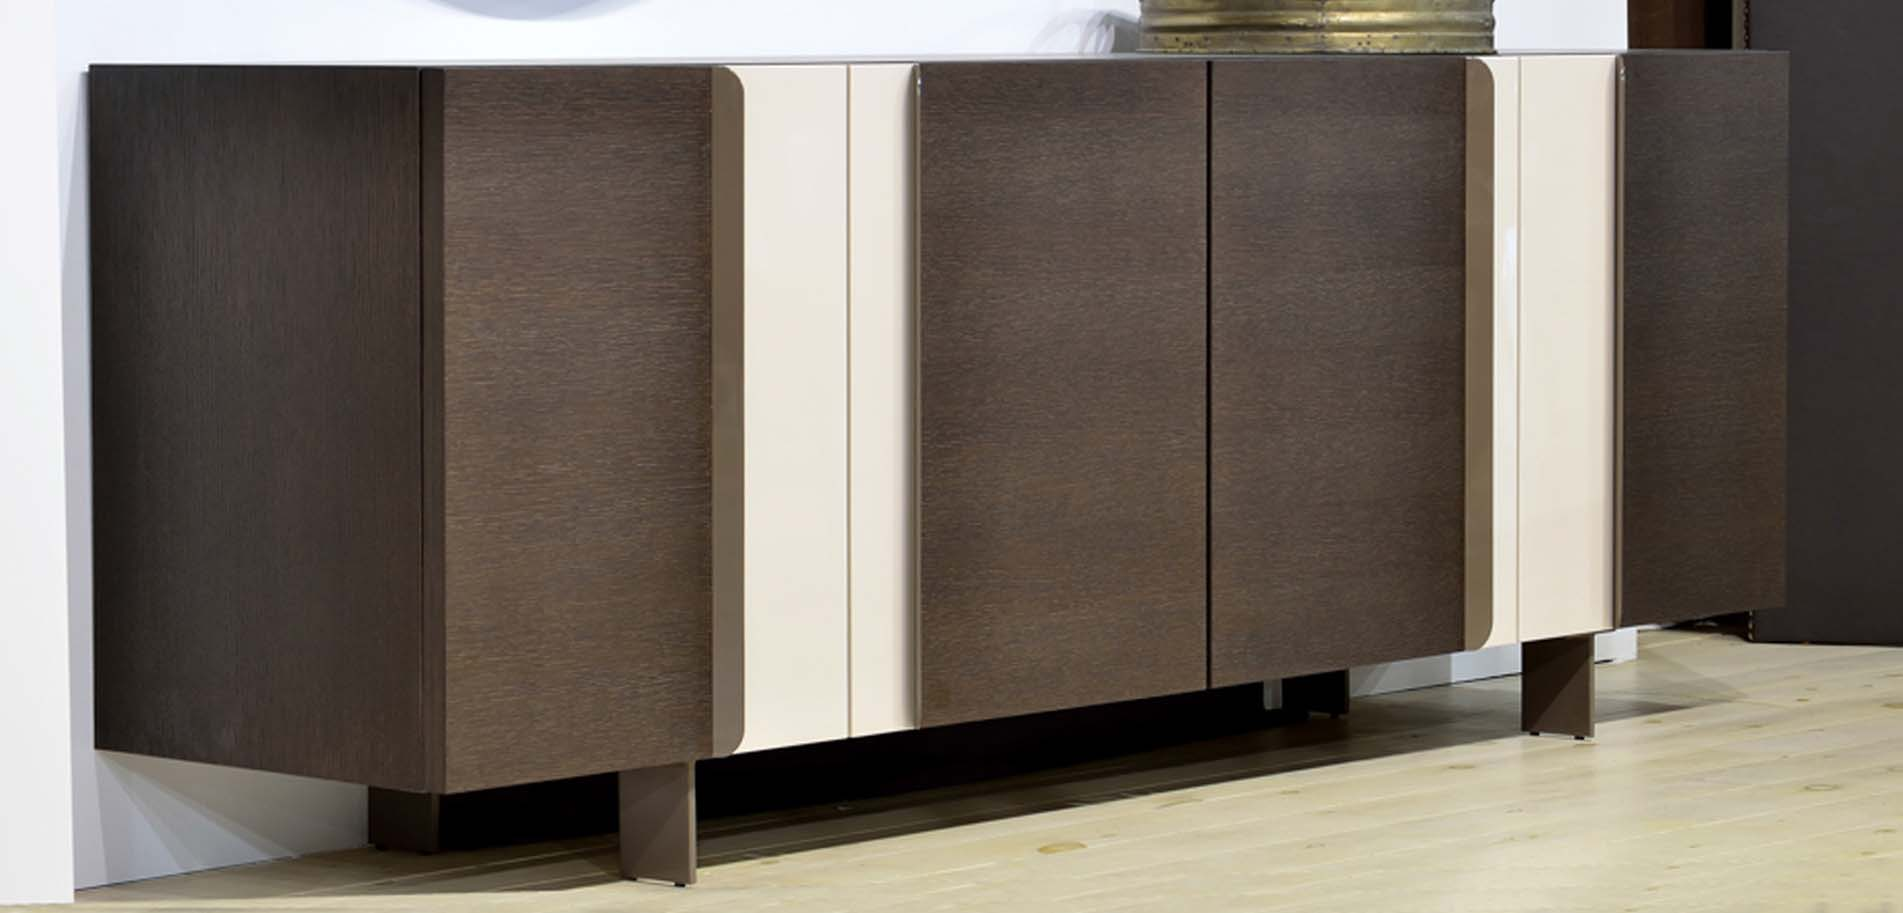 Sideboard With Laquered Details Έ ό